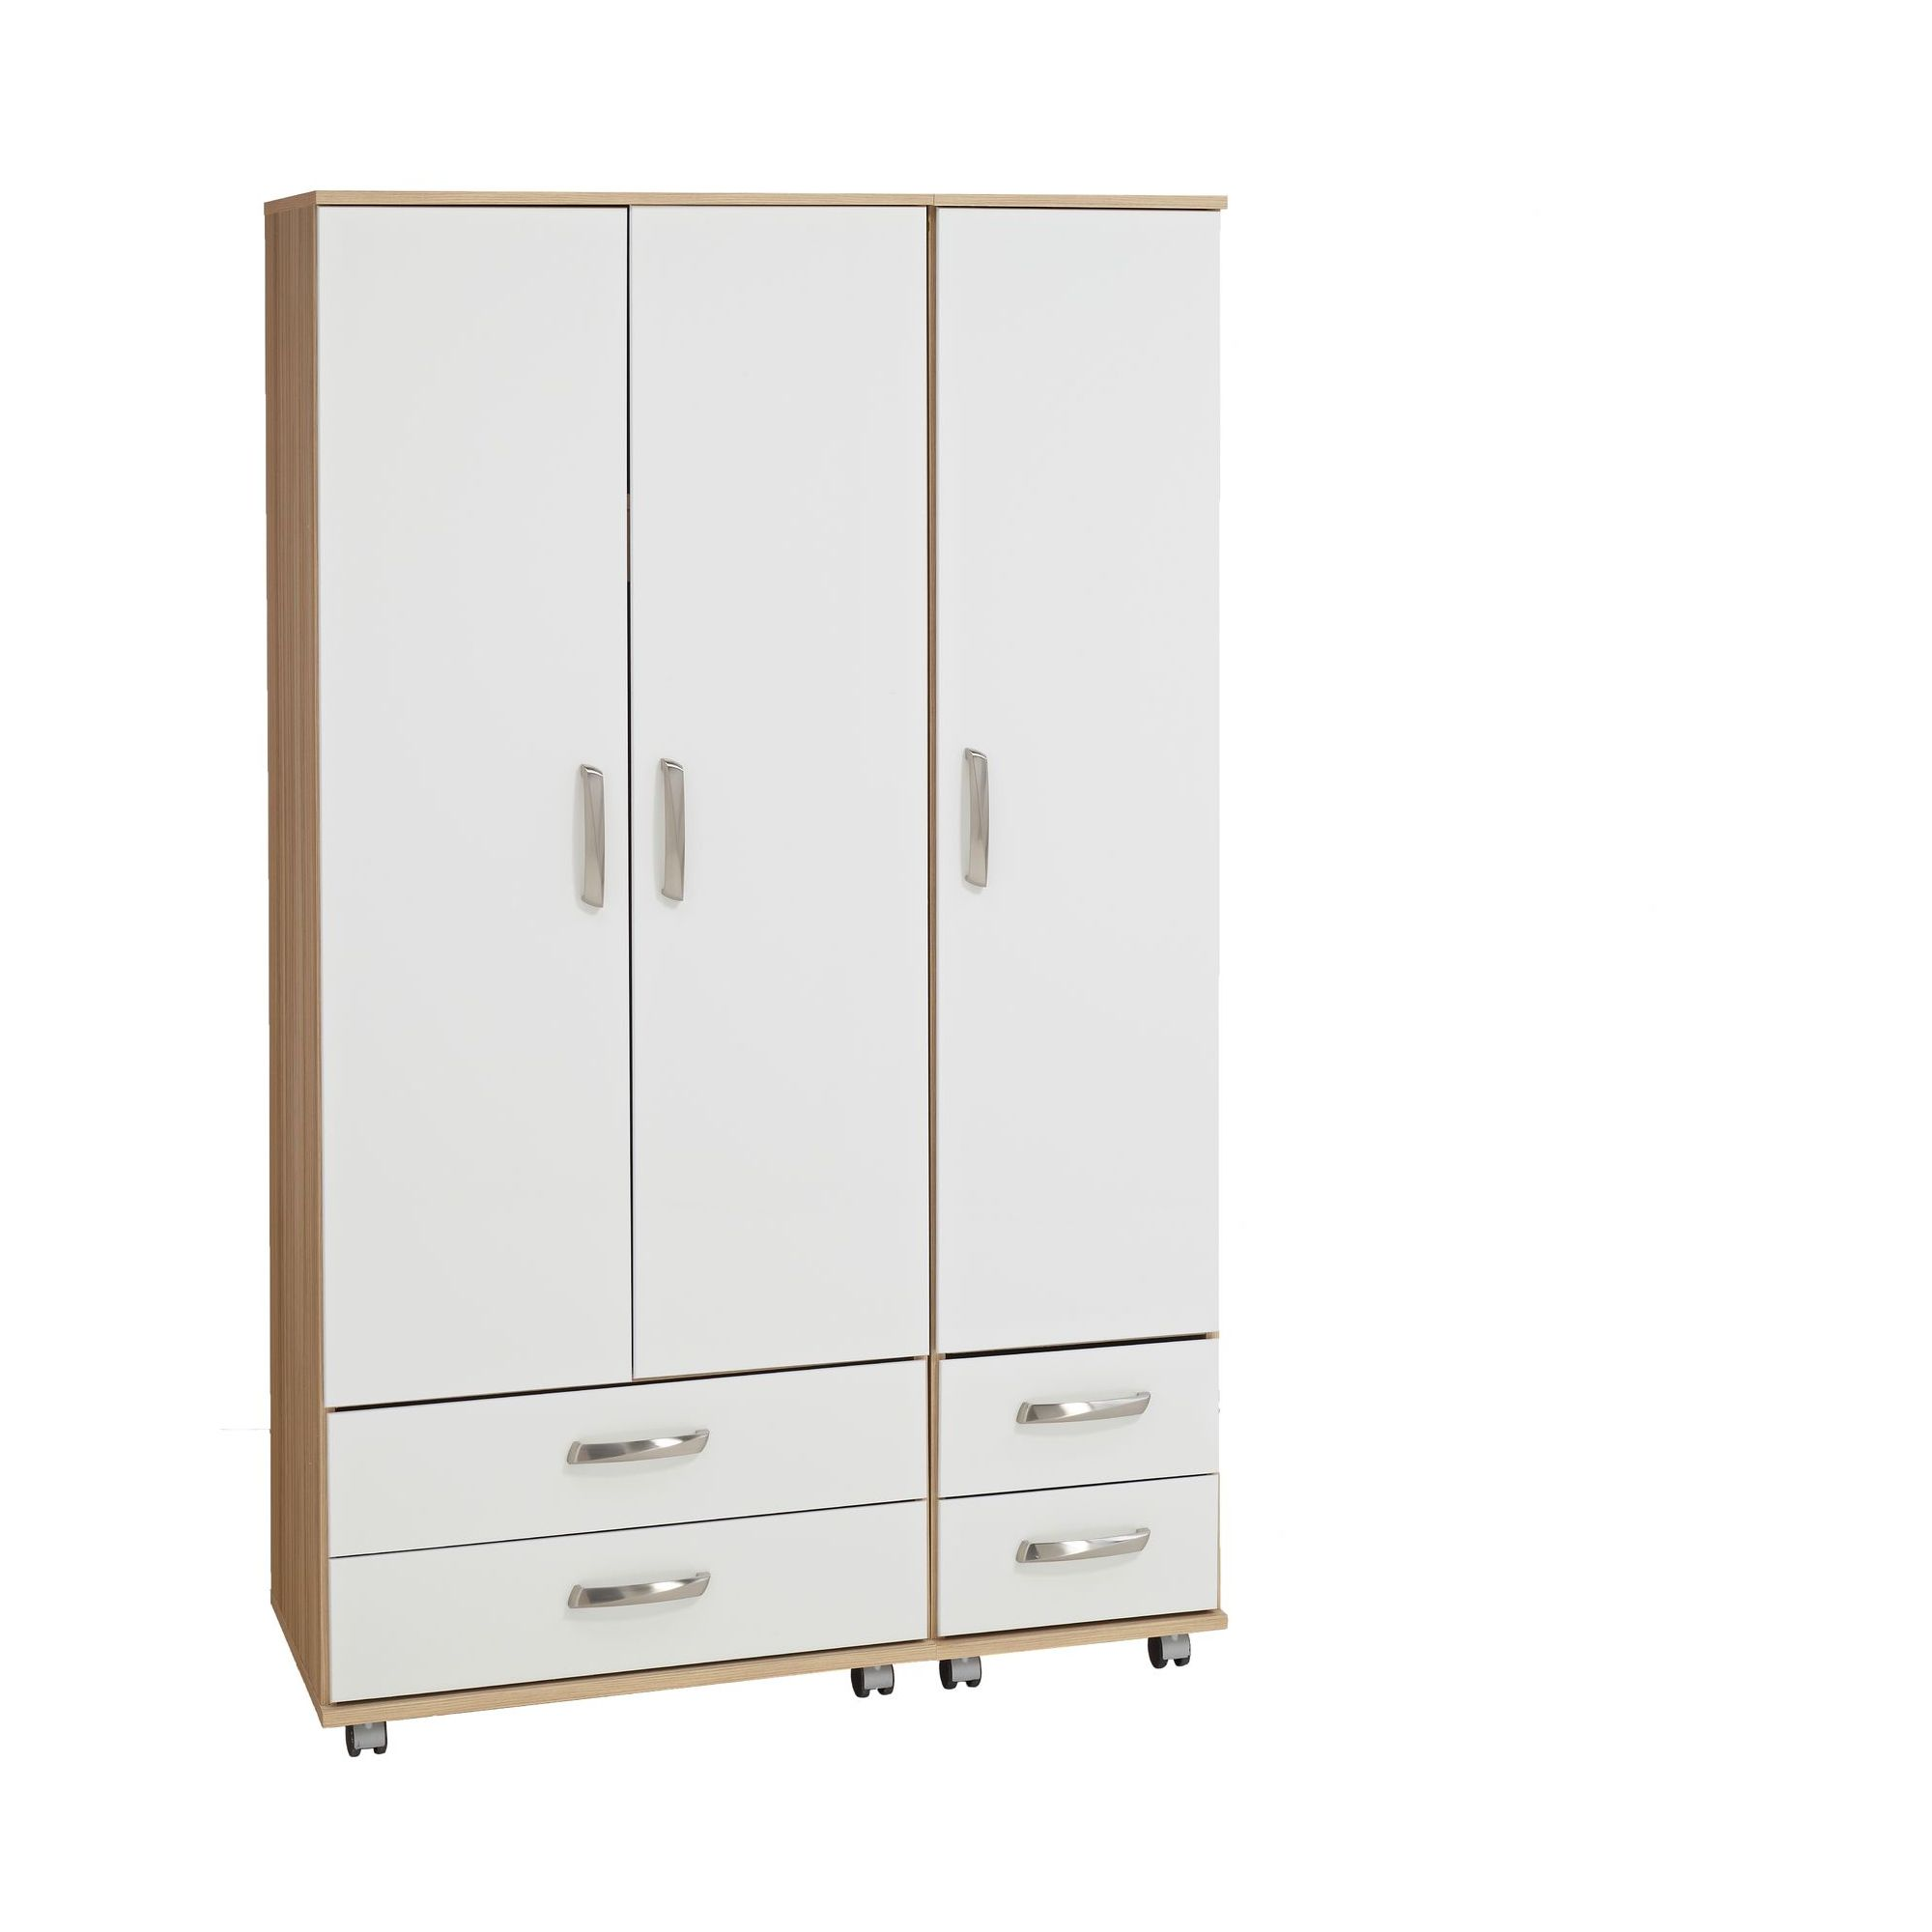 Ideal Furniture Regal 4 Drawer Wardrobe in white at Tesco Direct